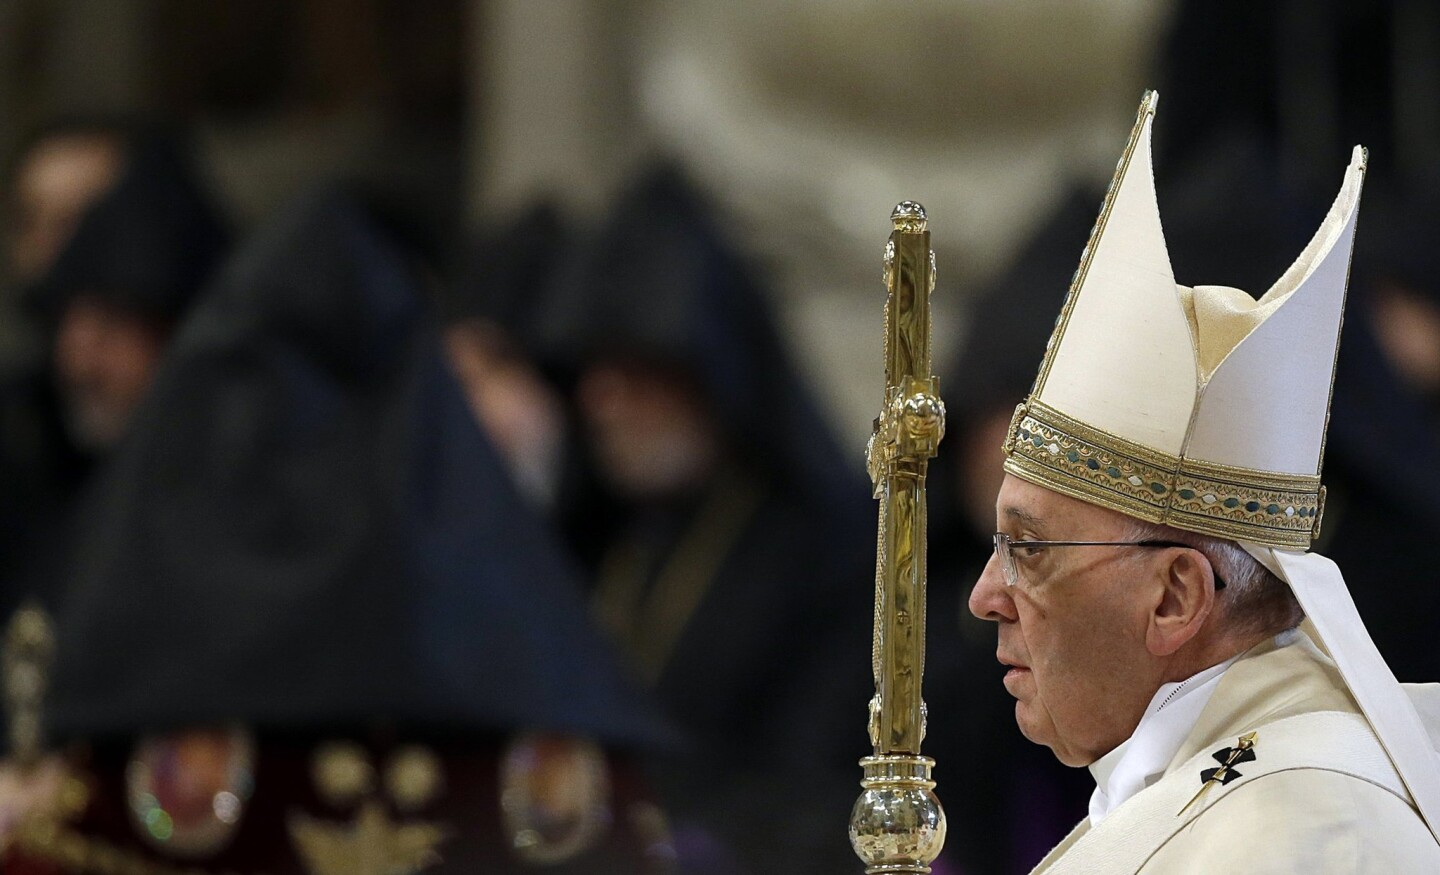 Pope Francis arrives in St. Peter's Basilica at the Vatican to preside over an Armenian rite Mass on April 12.